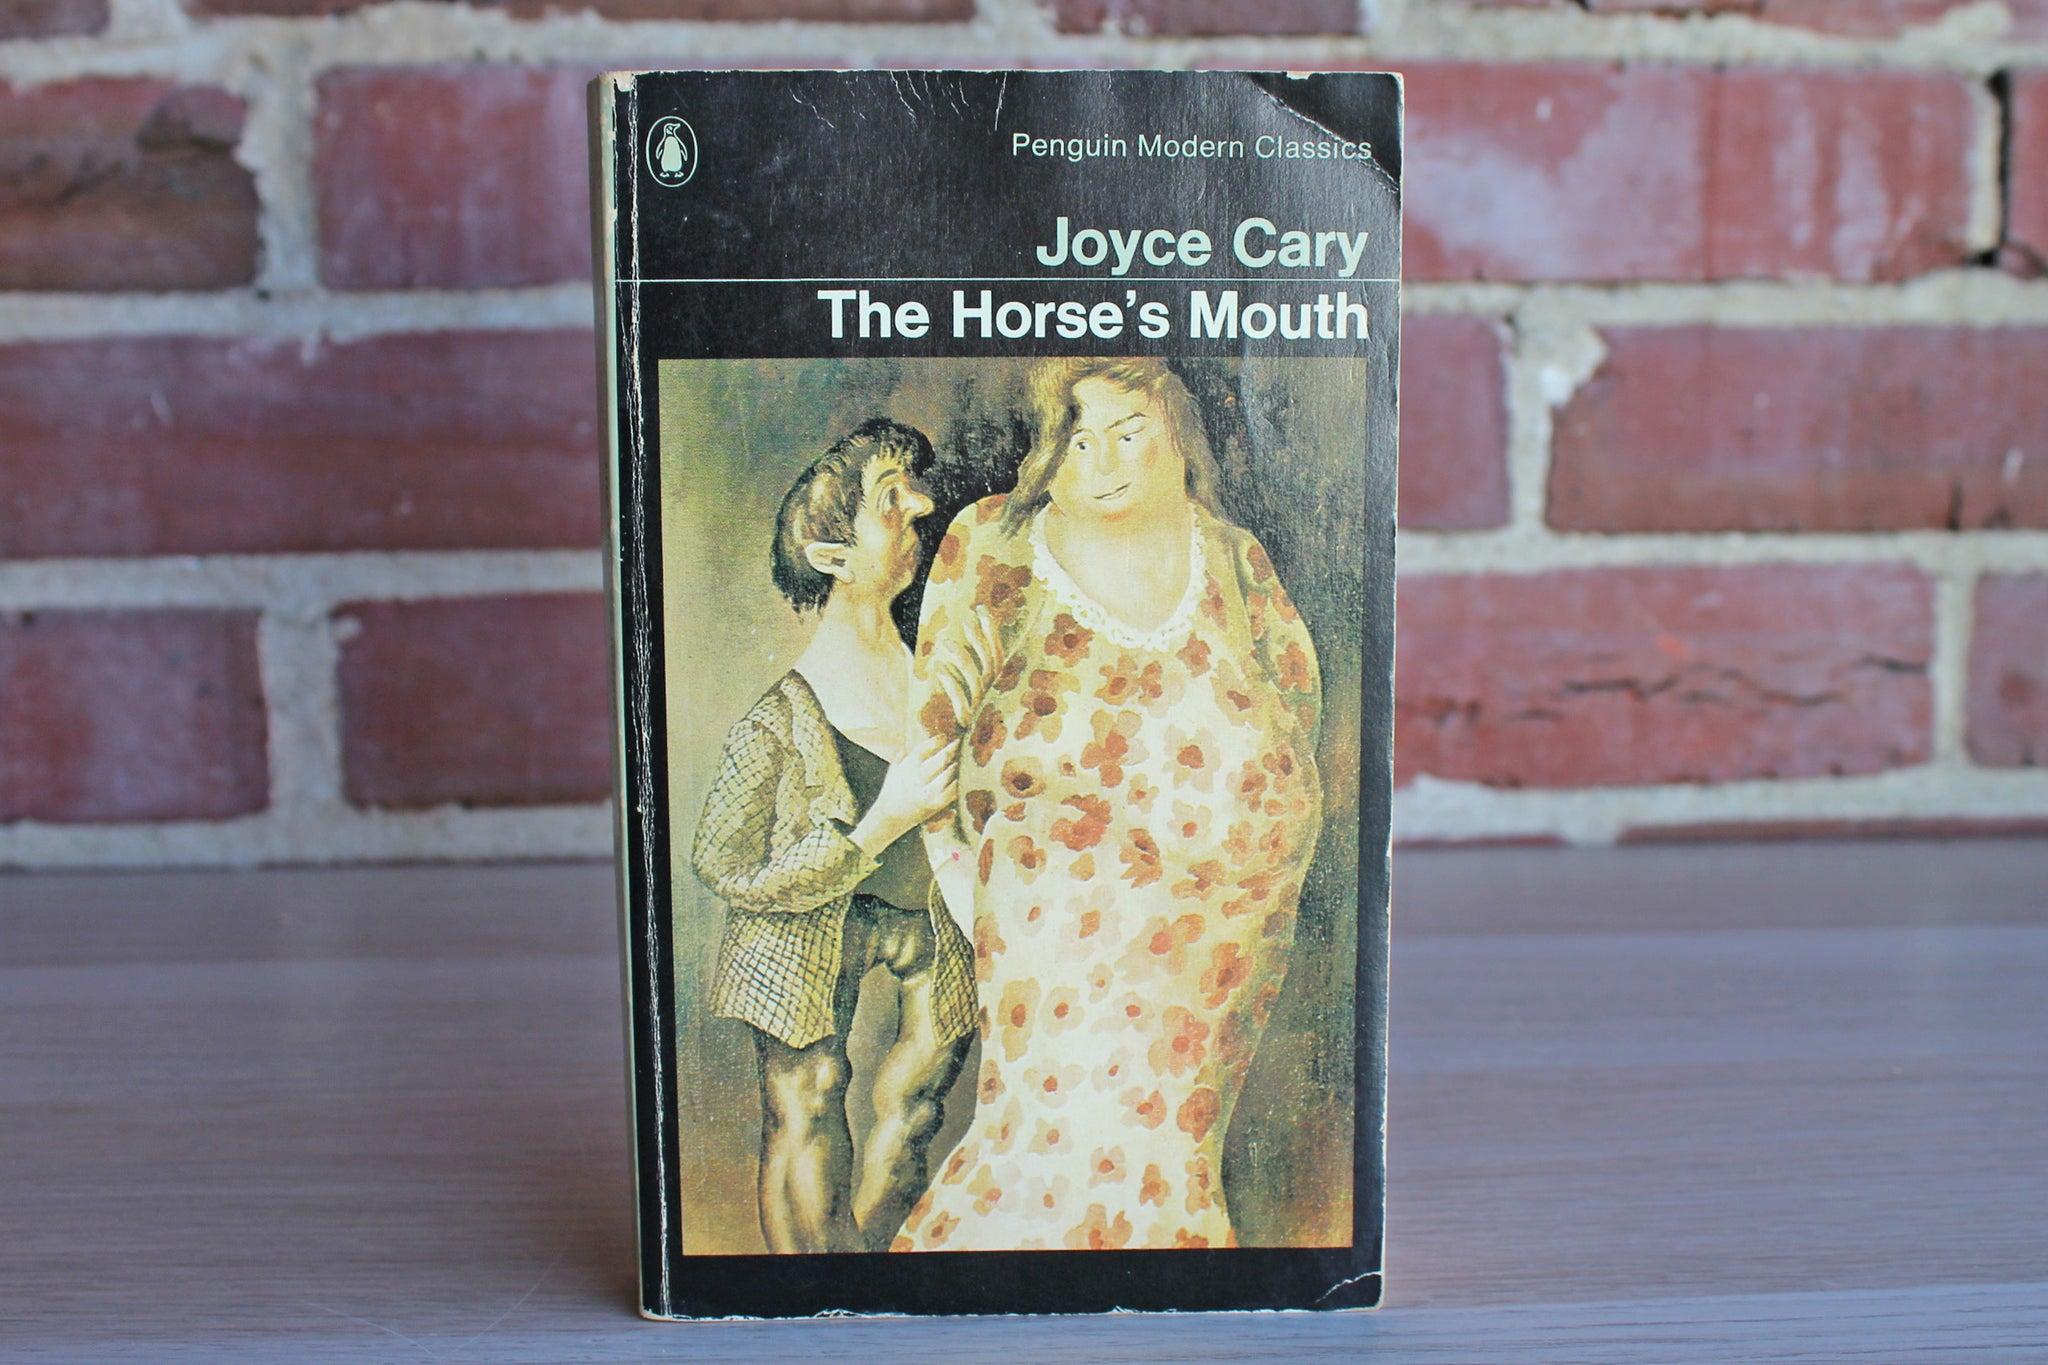 The Horse's Mouth by Joyce Cary